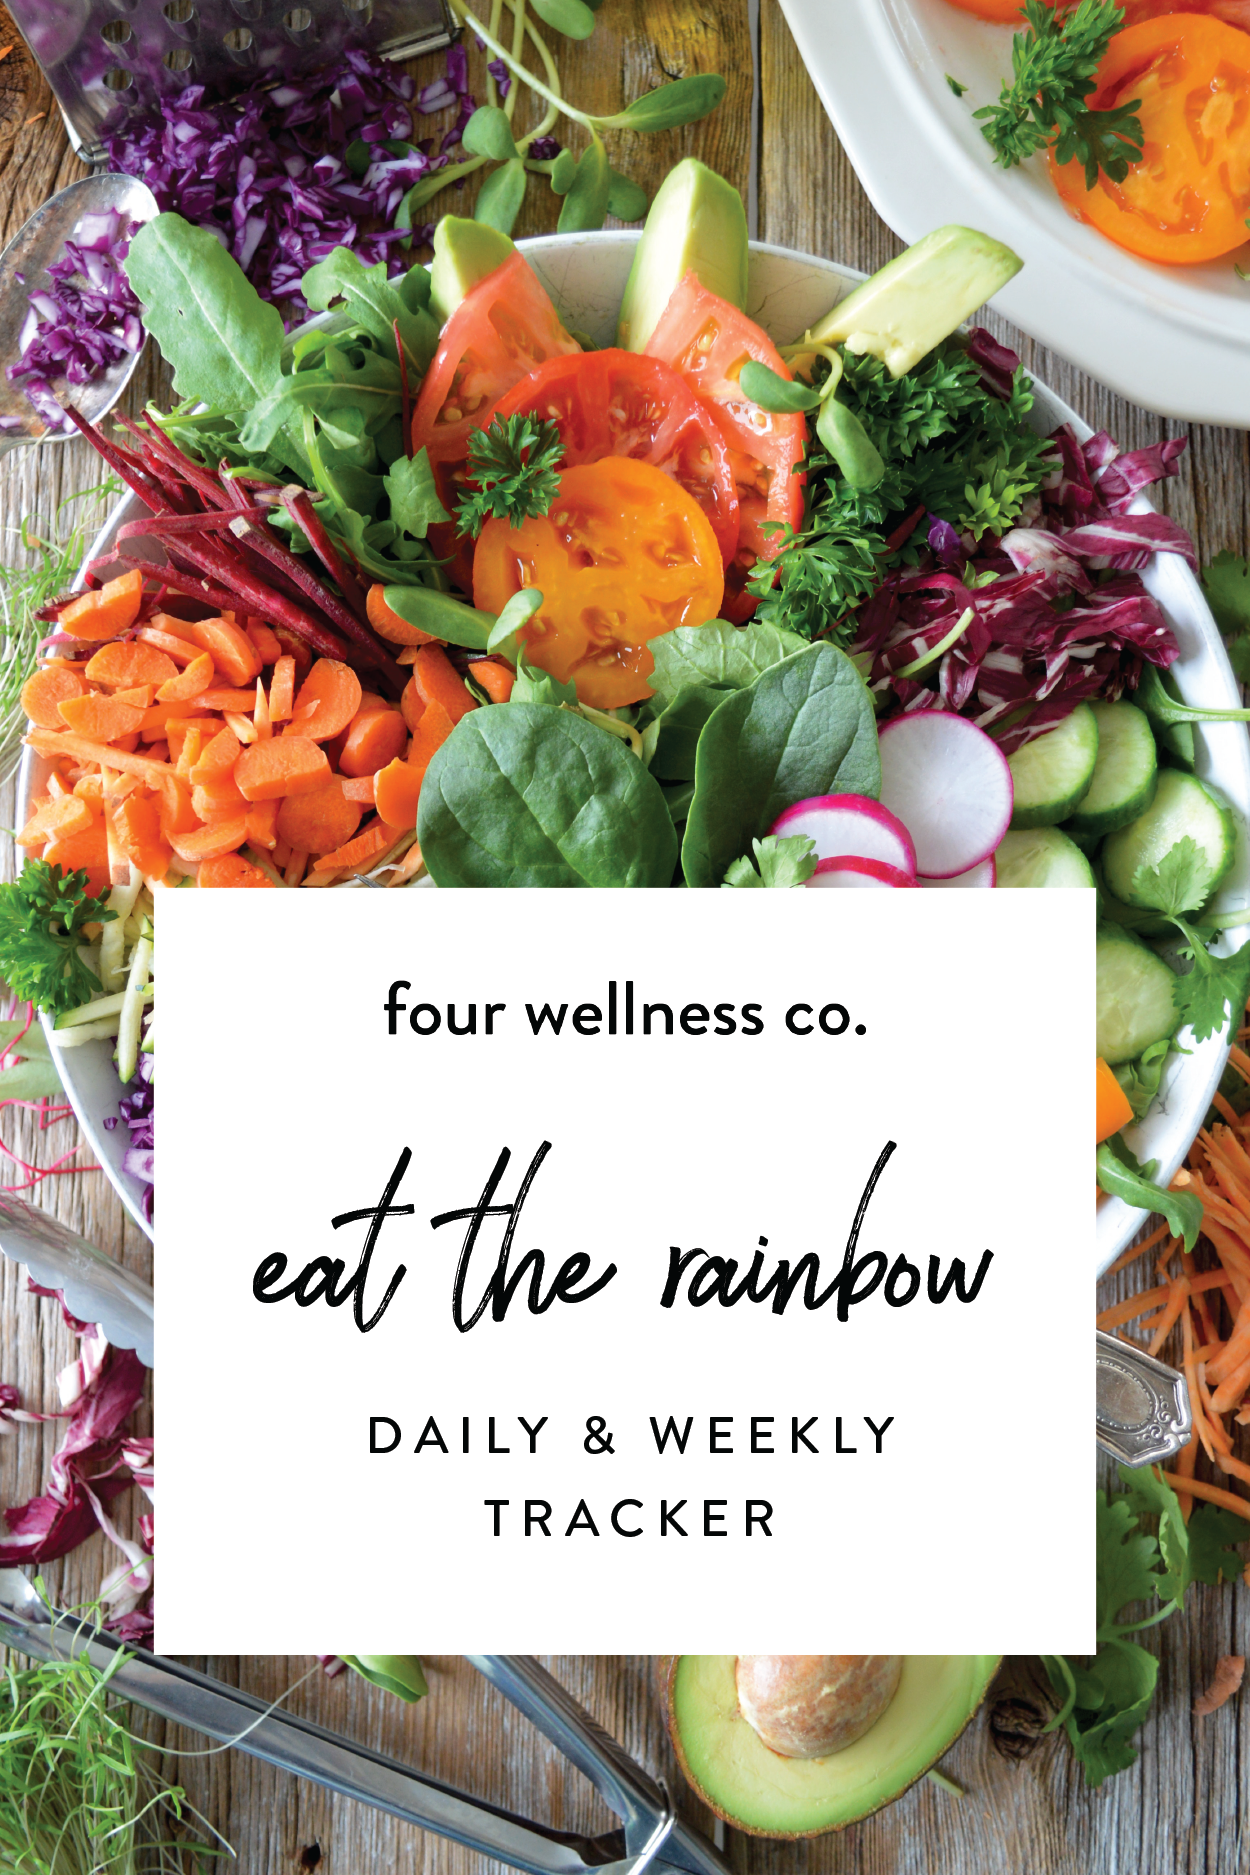 Eat the Rainbow daily & weekly tracker // Four Wellness Co. // Healthy eating tip: get your fruit & veggies with this daily & weekly tracker designed to make meal planning & healthy eating easier